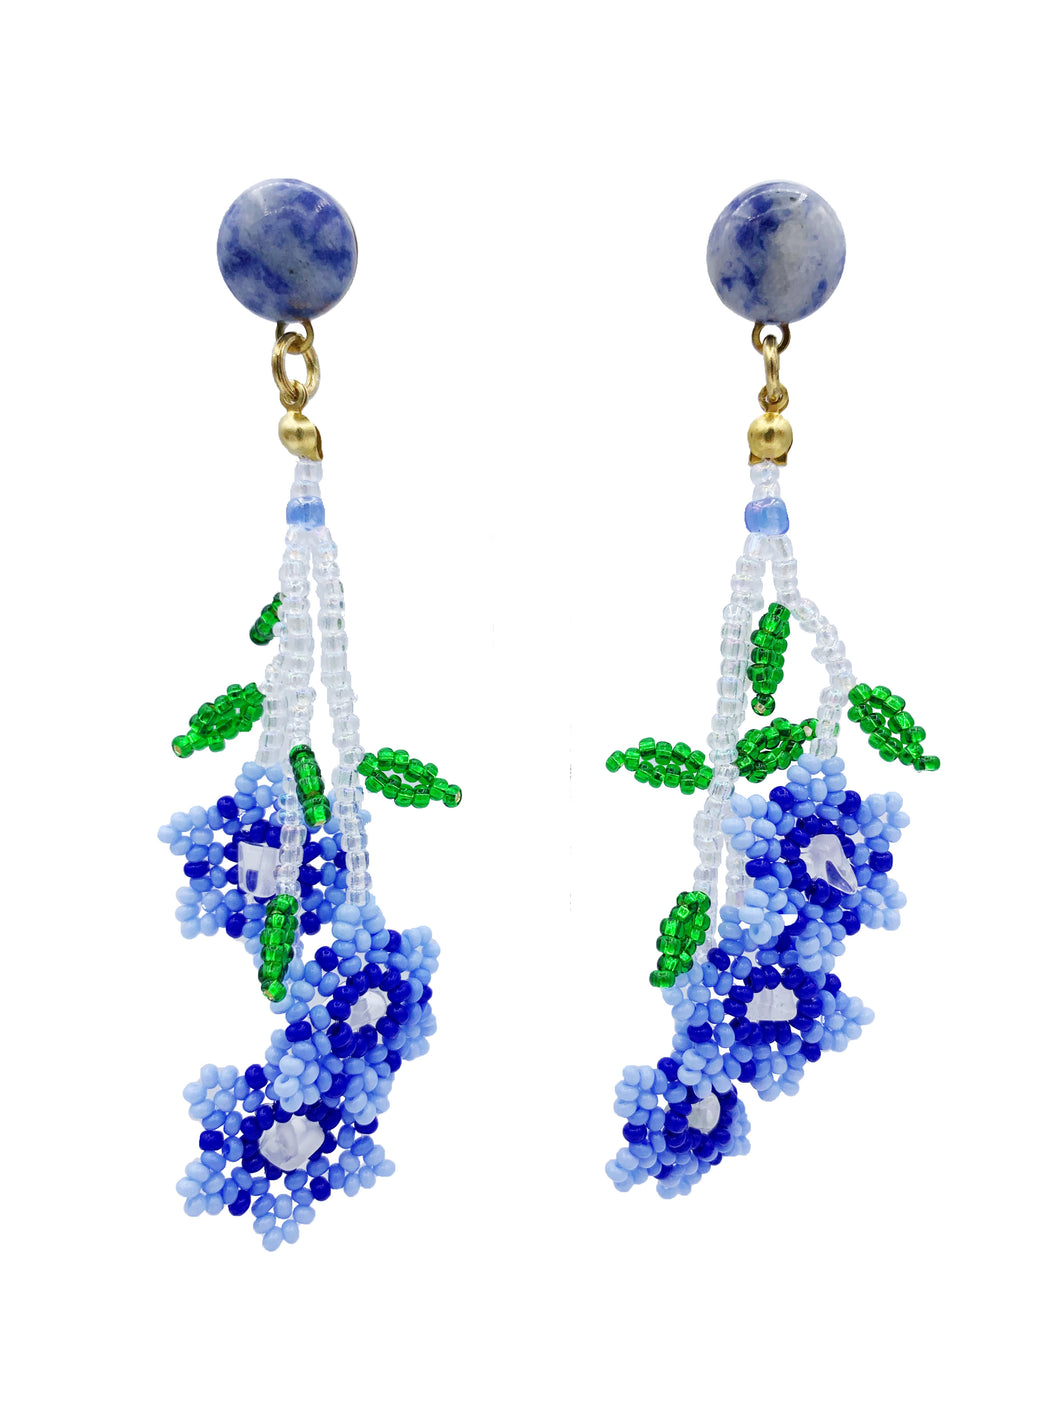 Daisy Earrings - Periwinkle